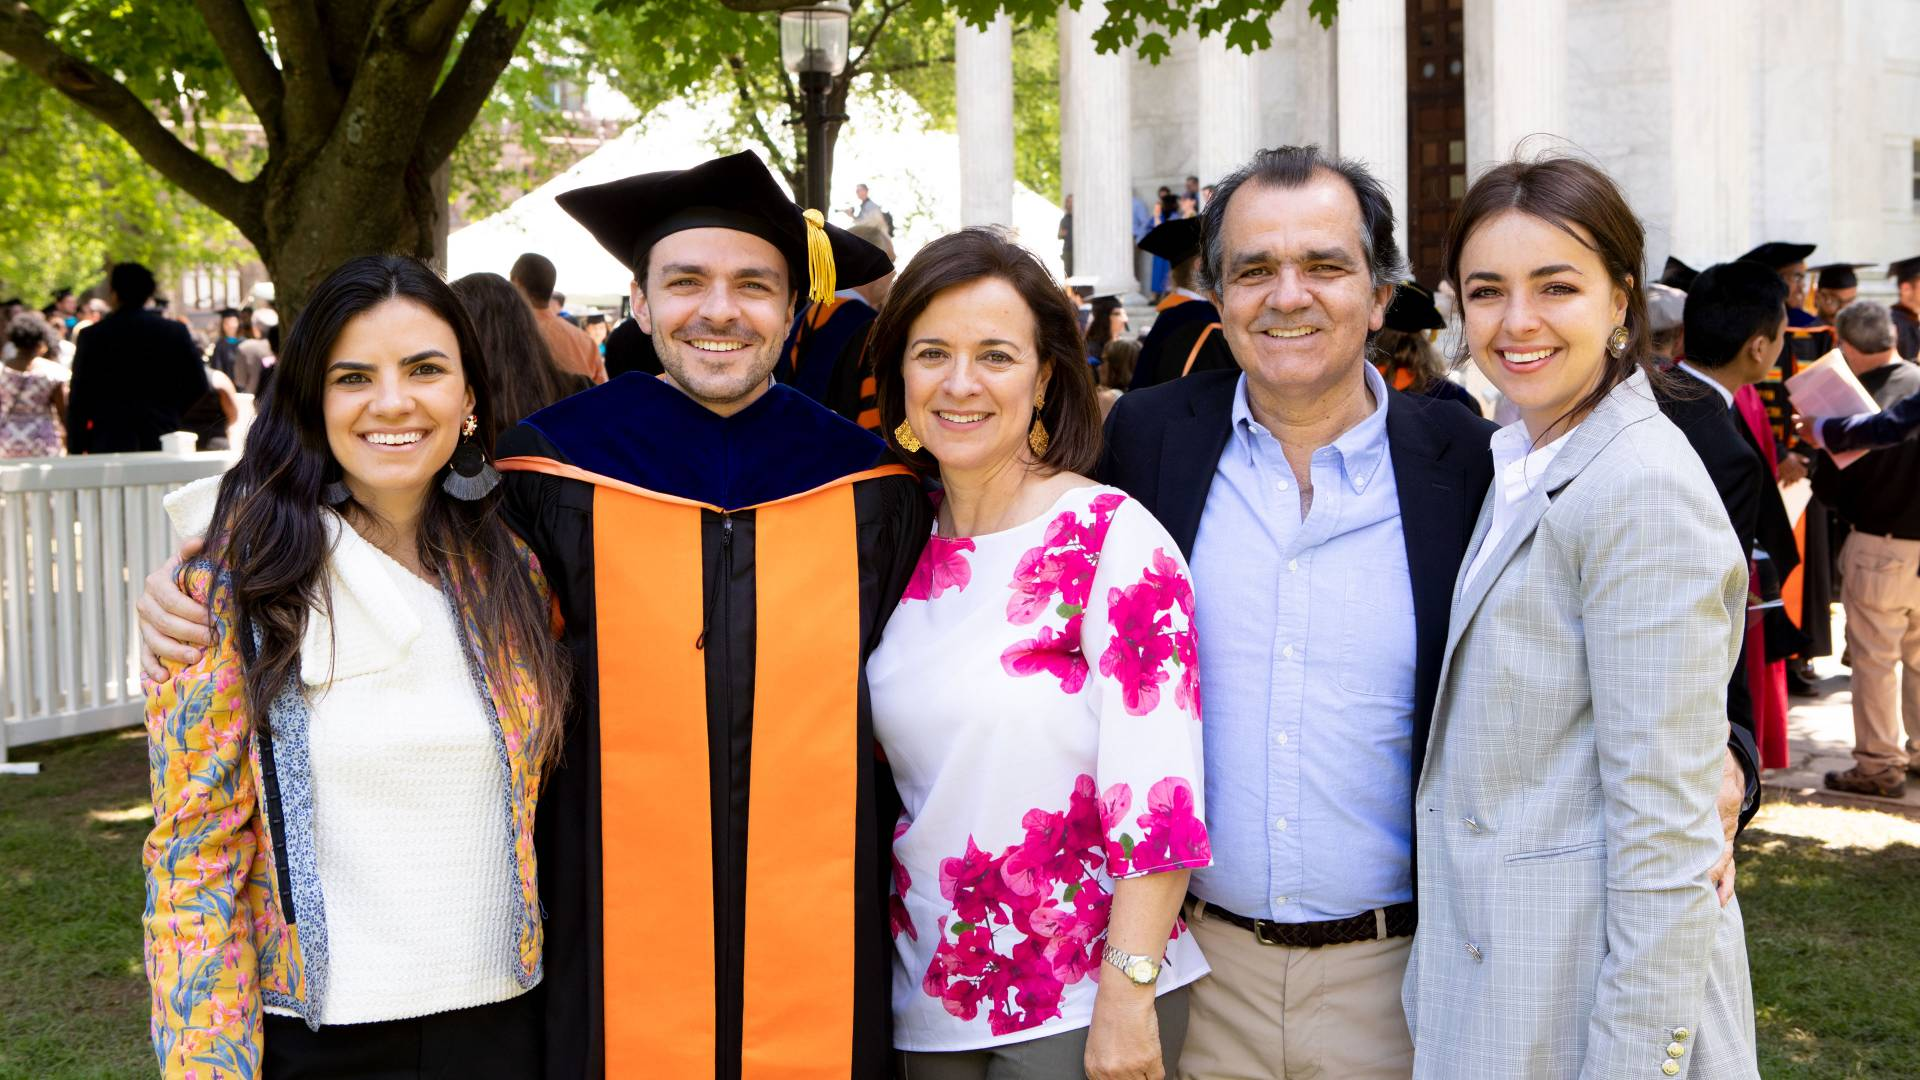 David Zuluaga Martinez with his family after the Commencement ceremony